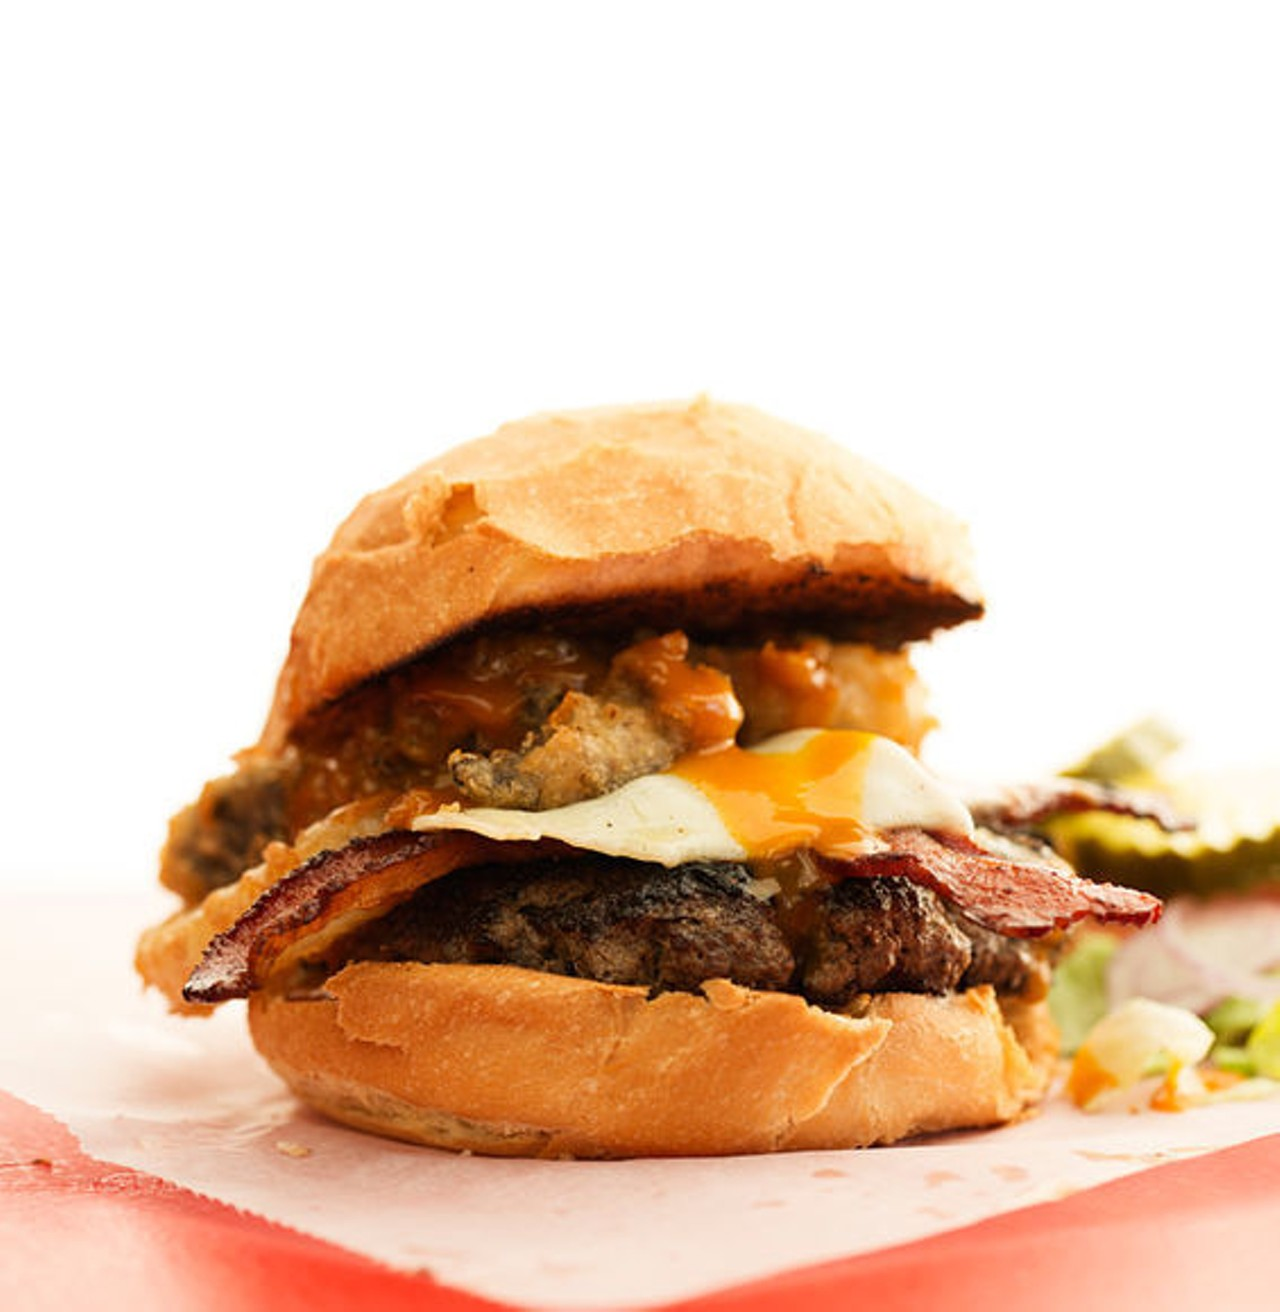 The Kitchen Sink | St. Louis - Midtown | American, Burgers, Cajun ...